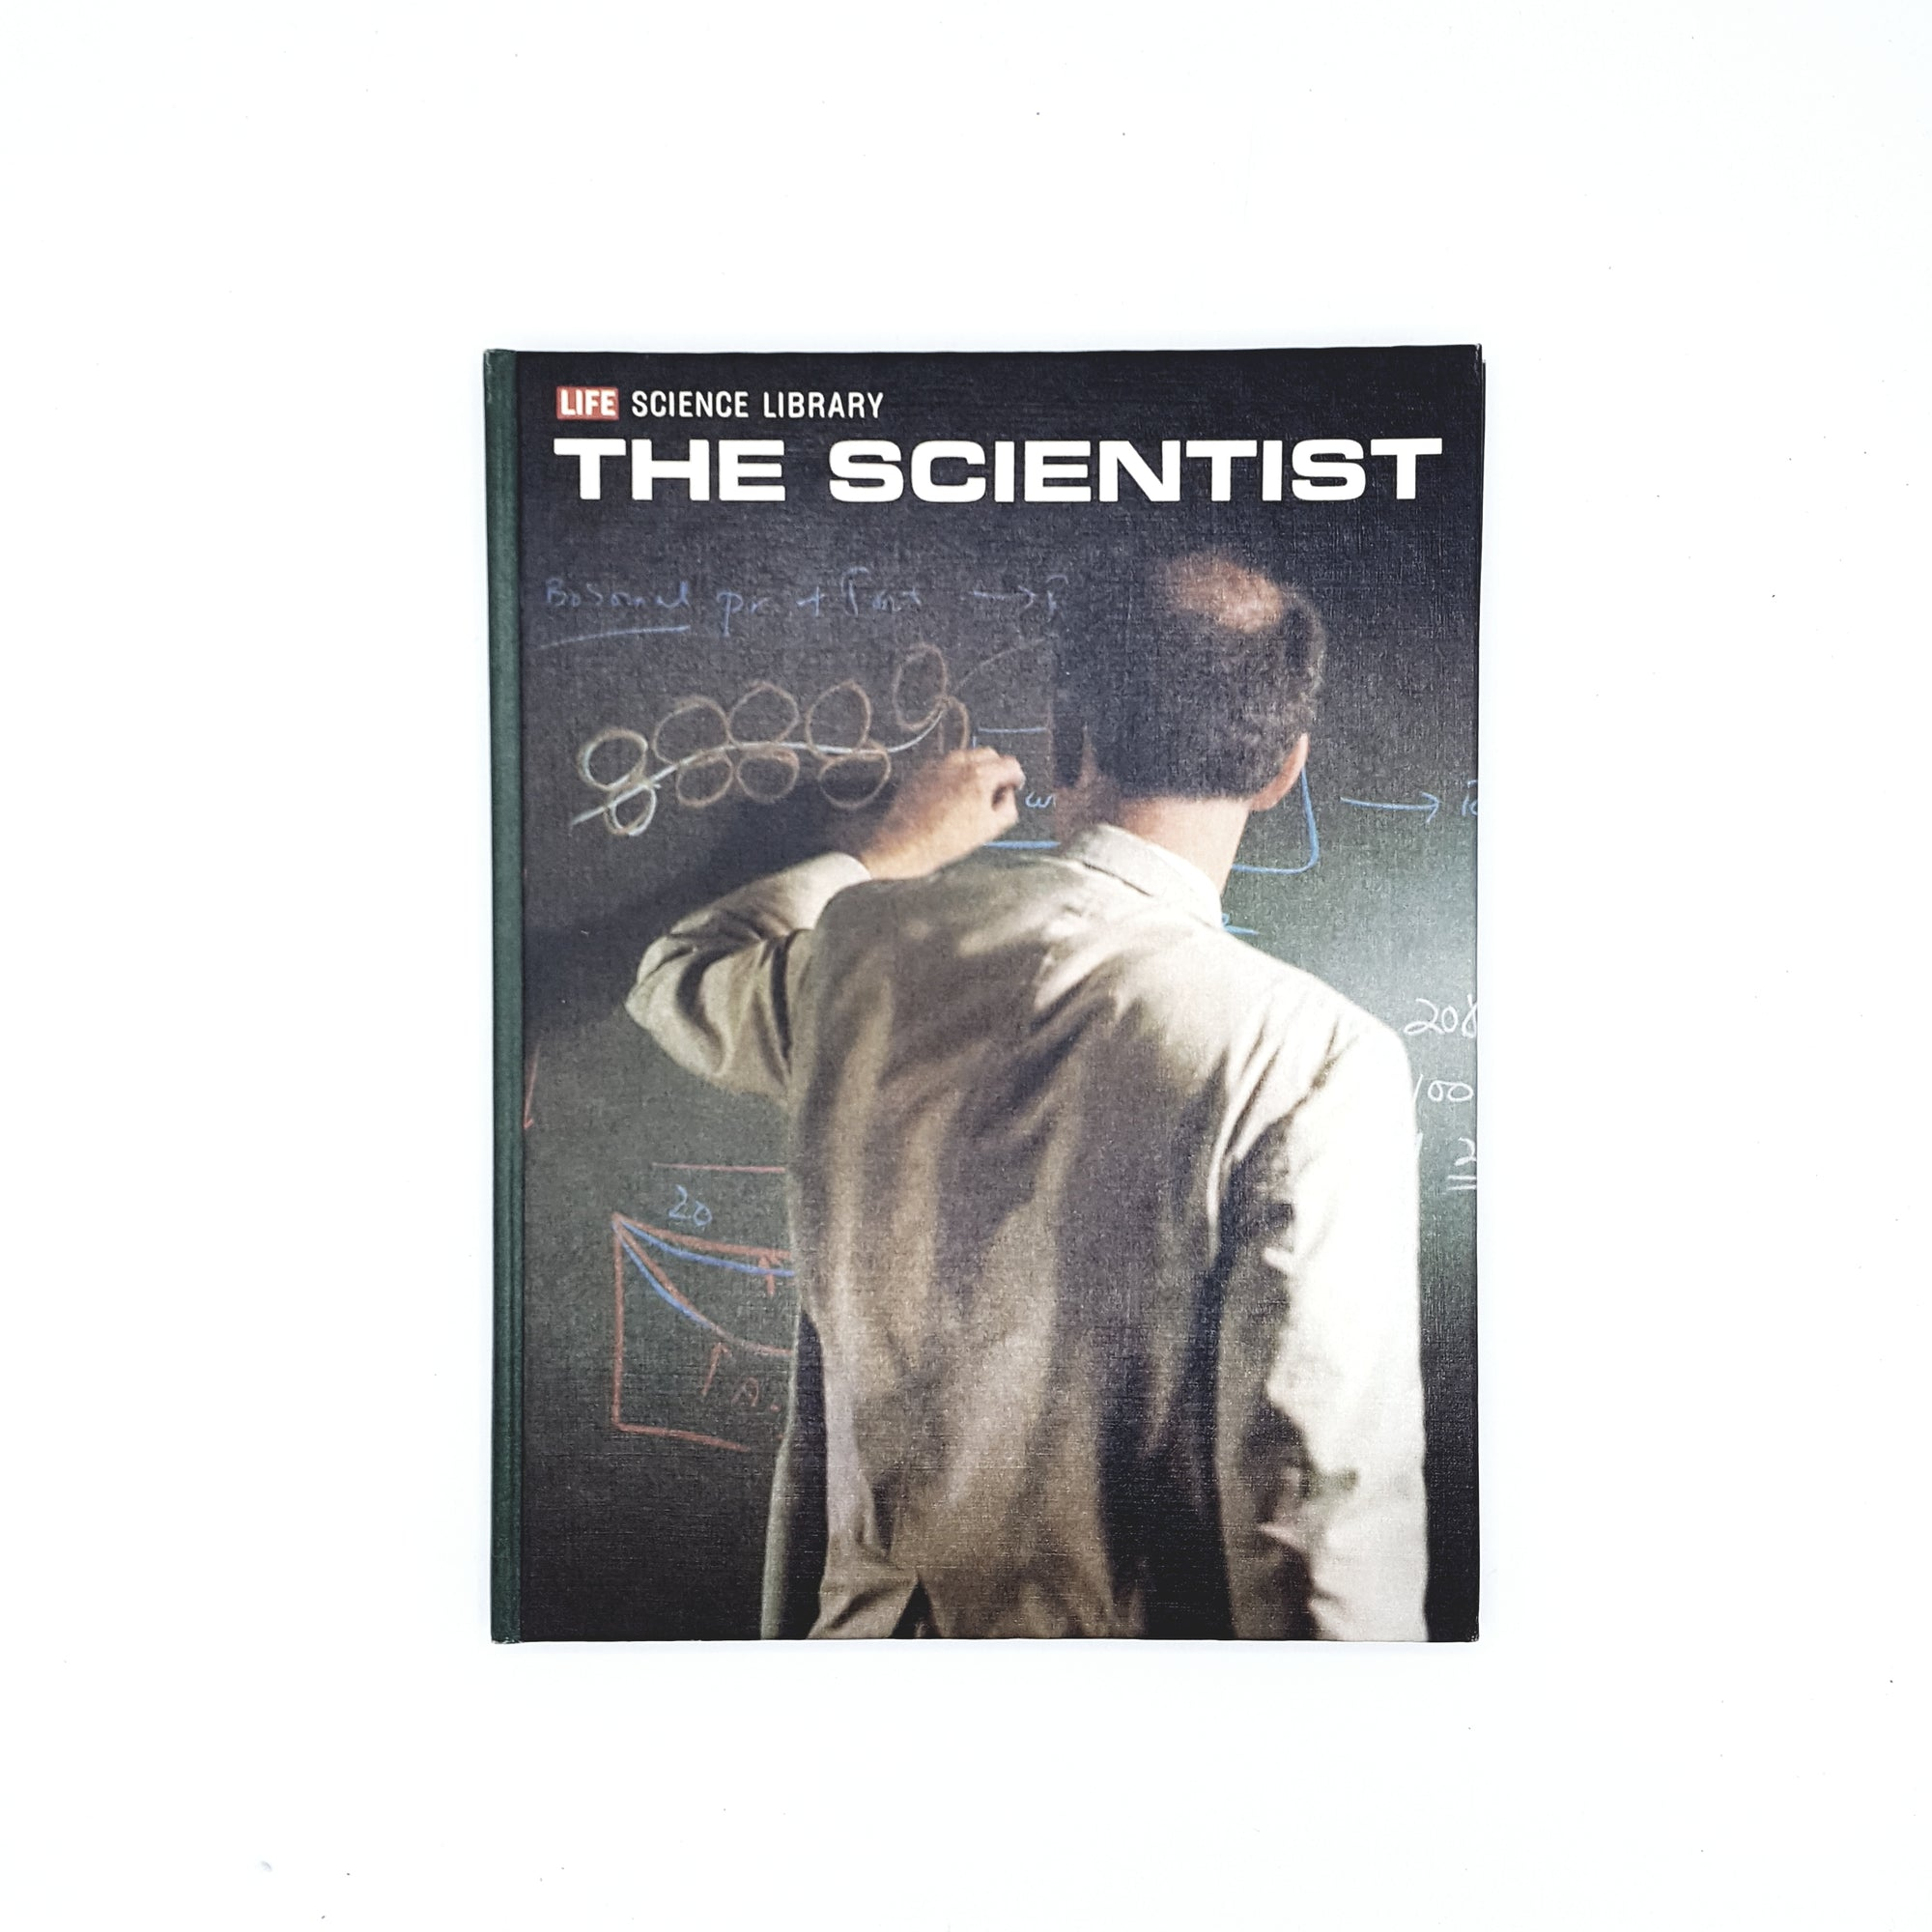 Life Science Library: The Scientist 1974